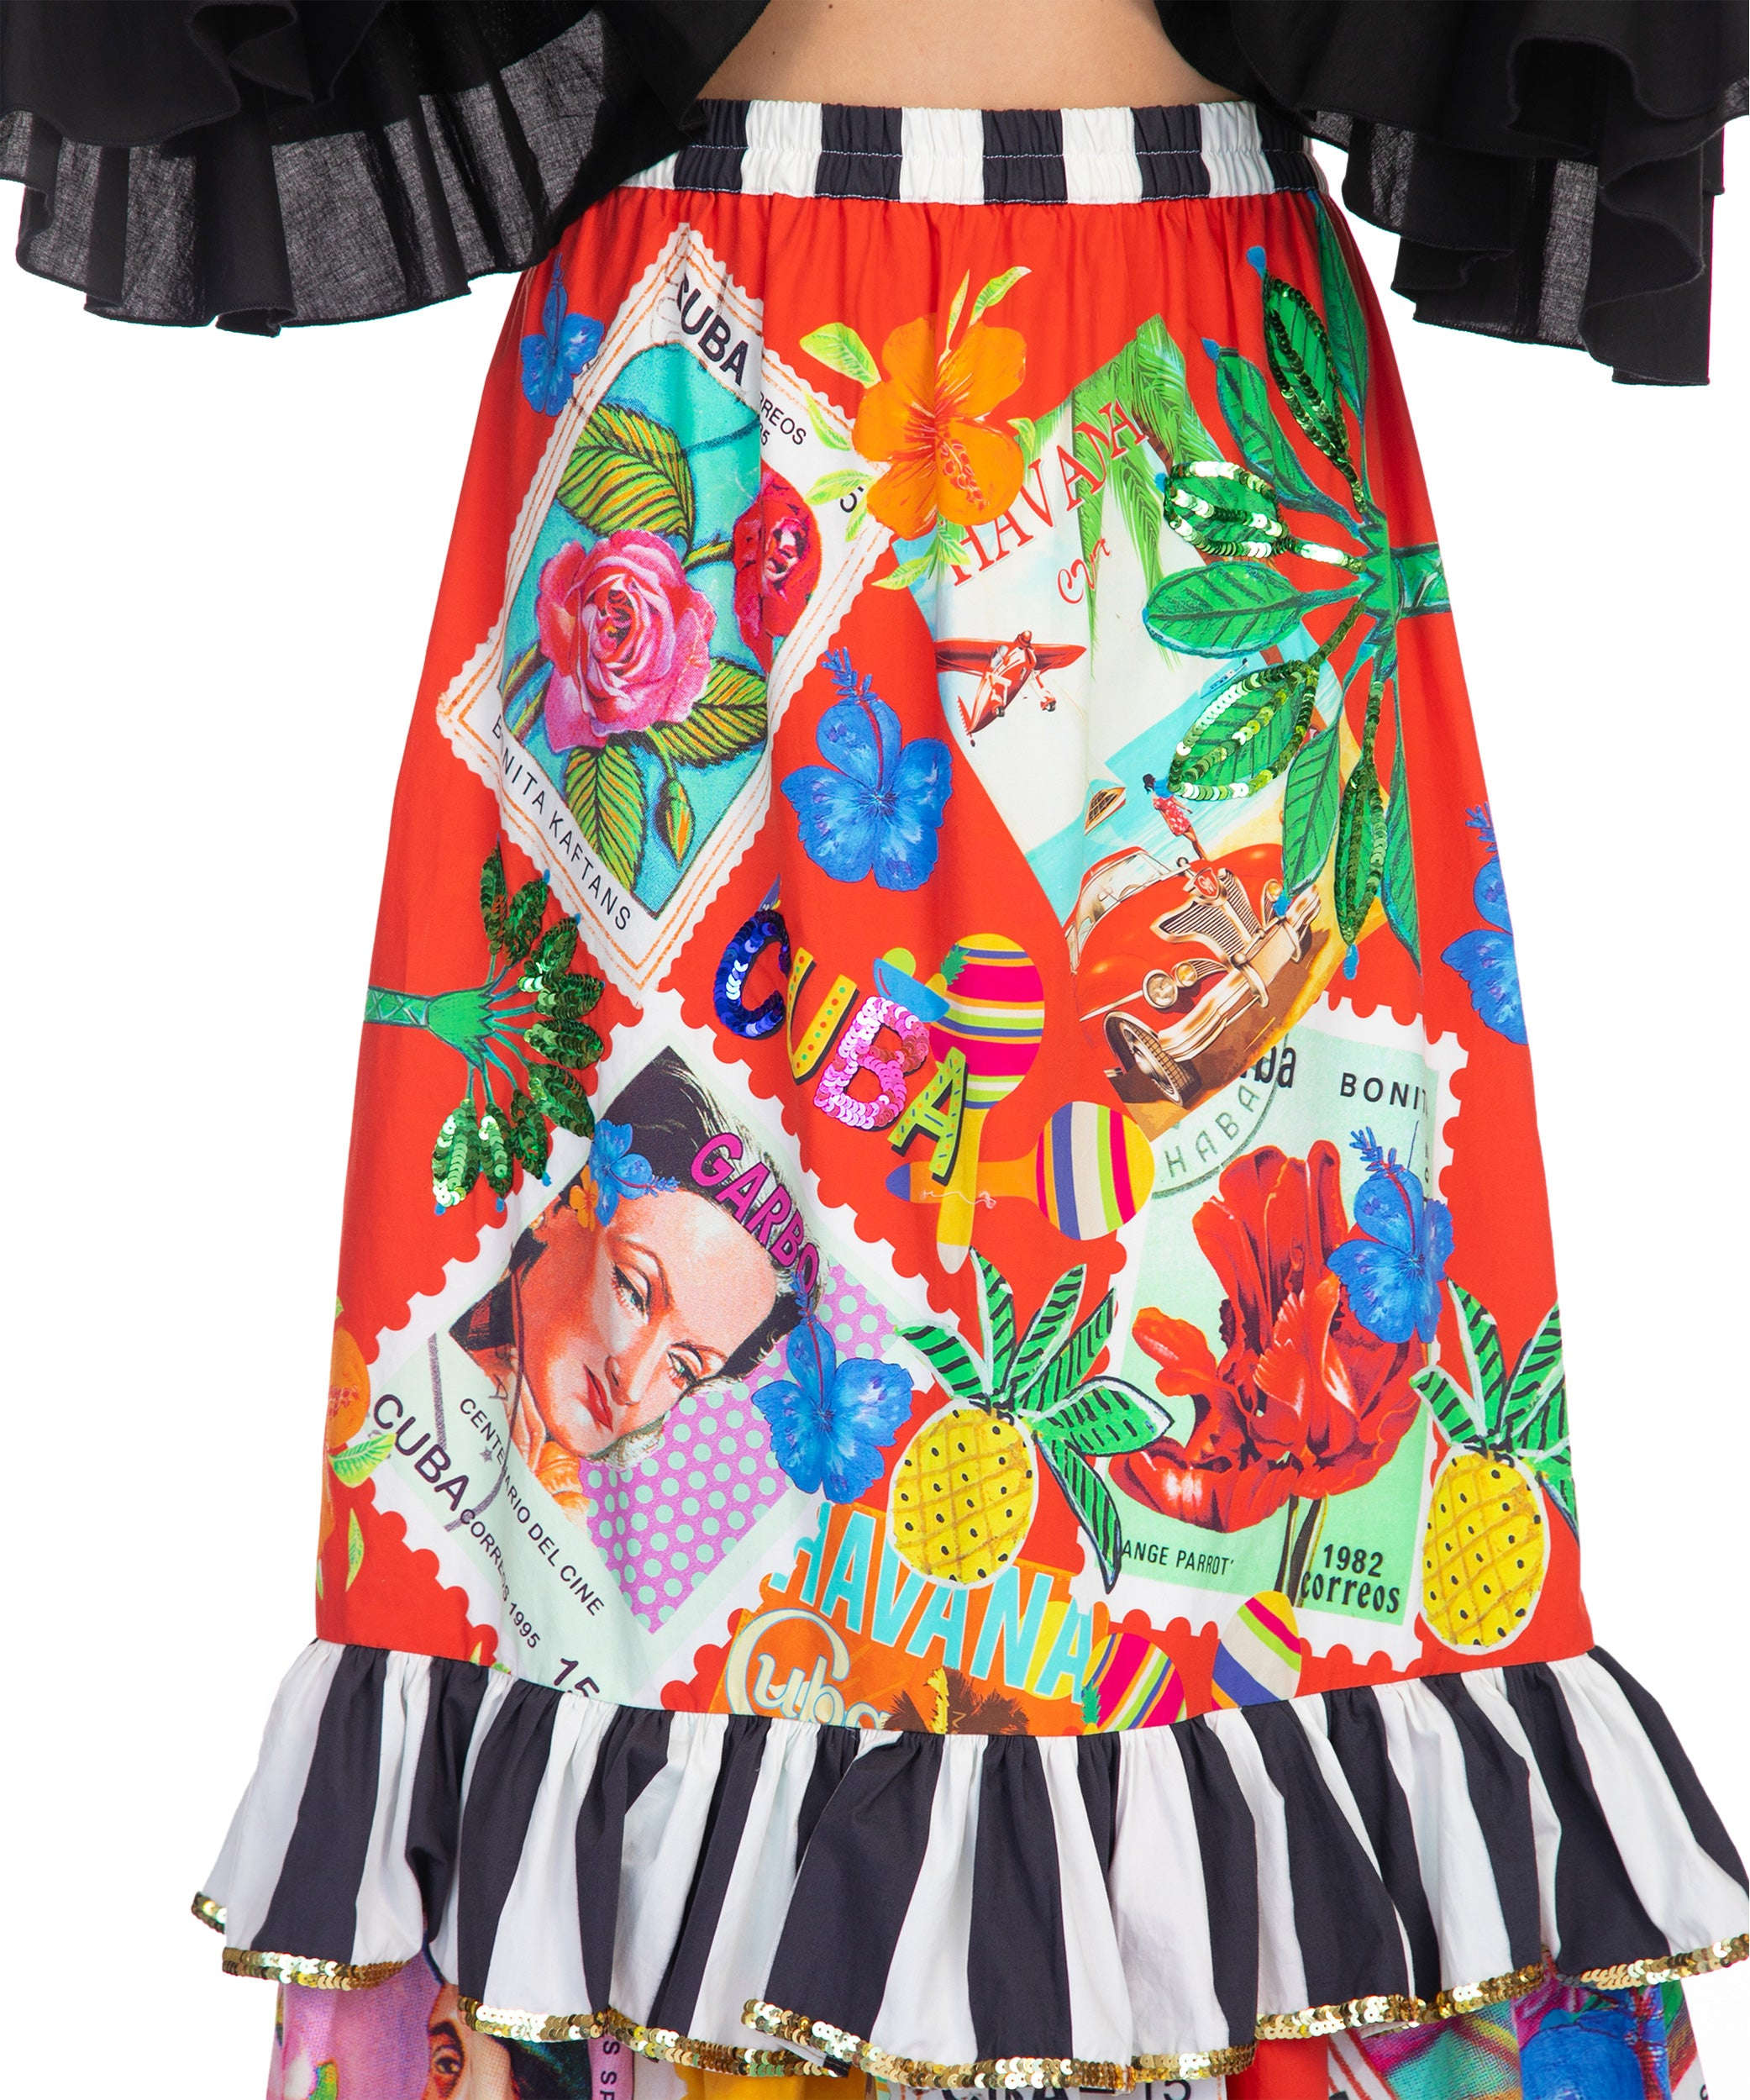 The Cuban Stamp Slimline Ruffle Skirt by Bonita Collective